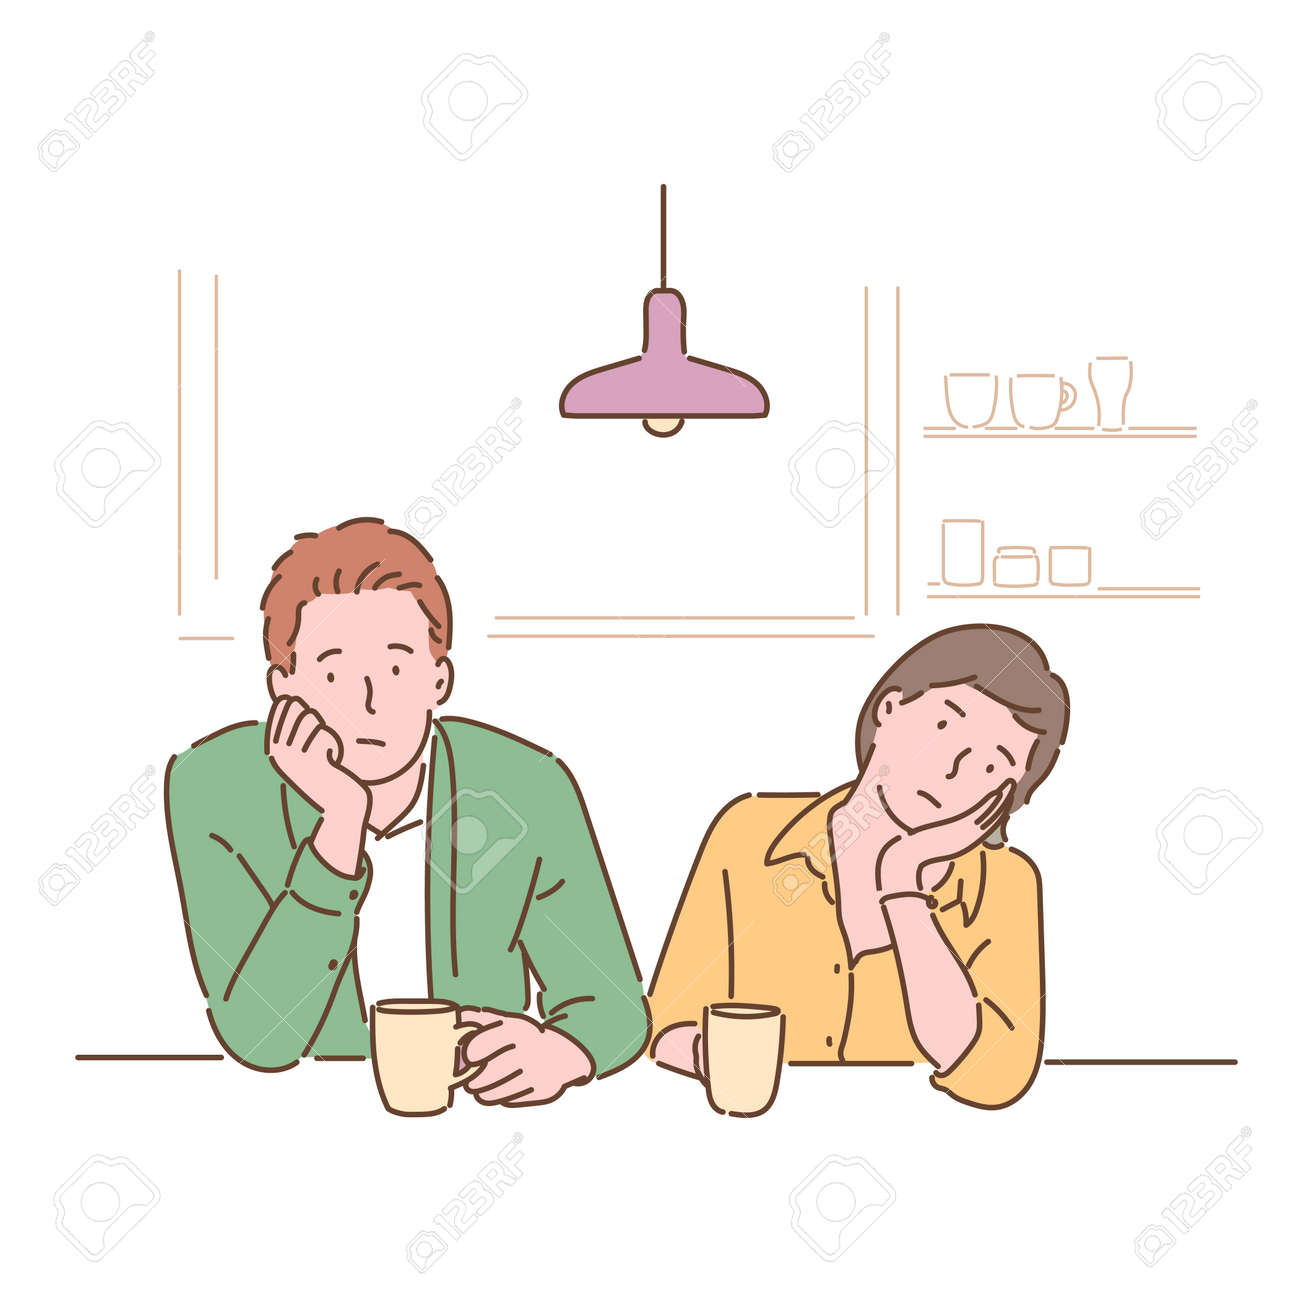 A couple sits at the table and shrugs their chins with a bored expression. hand drawn style vector design illustrations. - 172368715